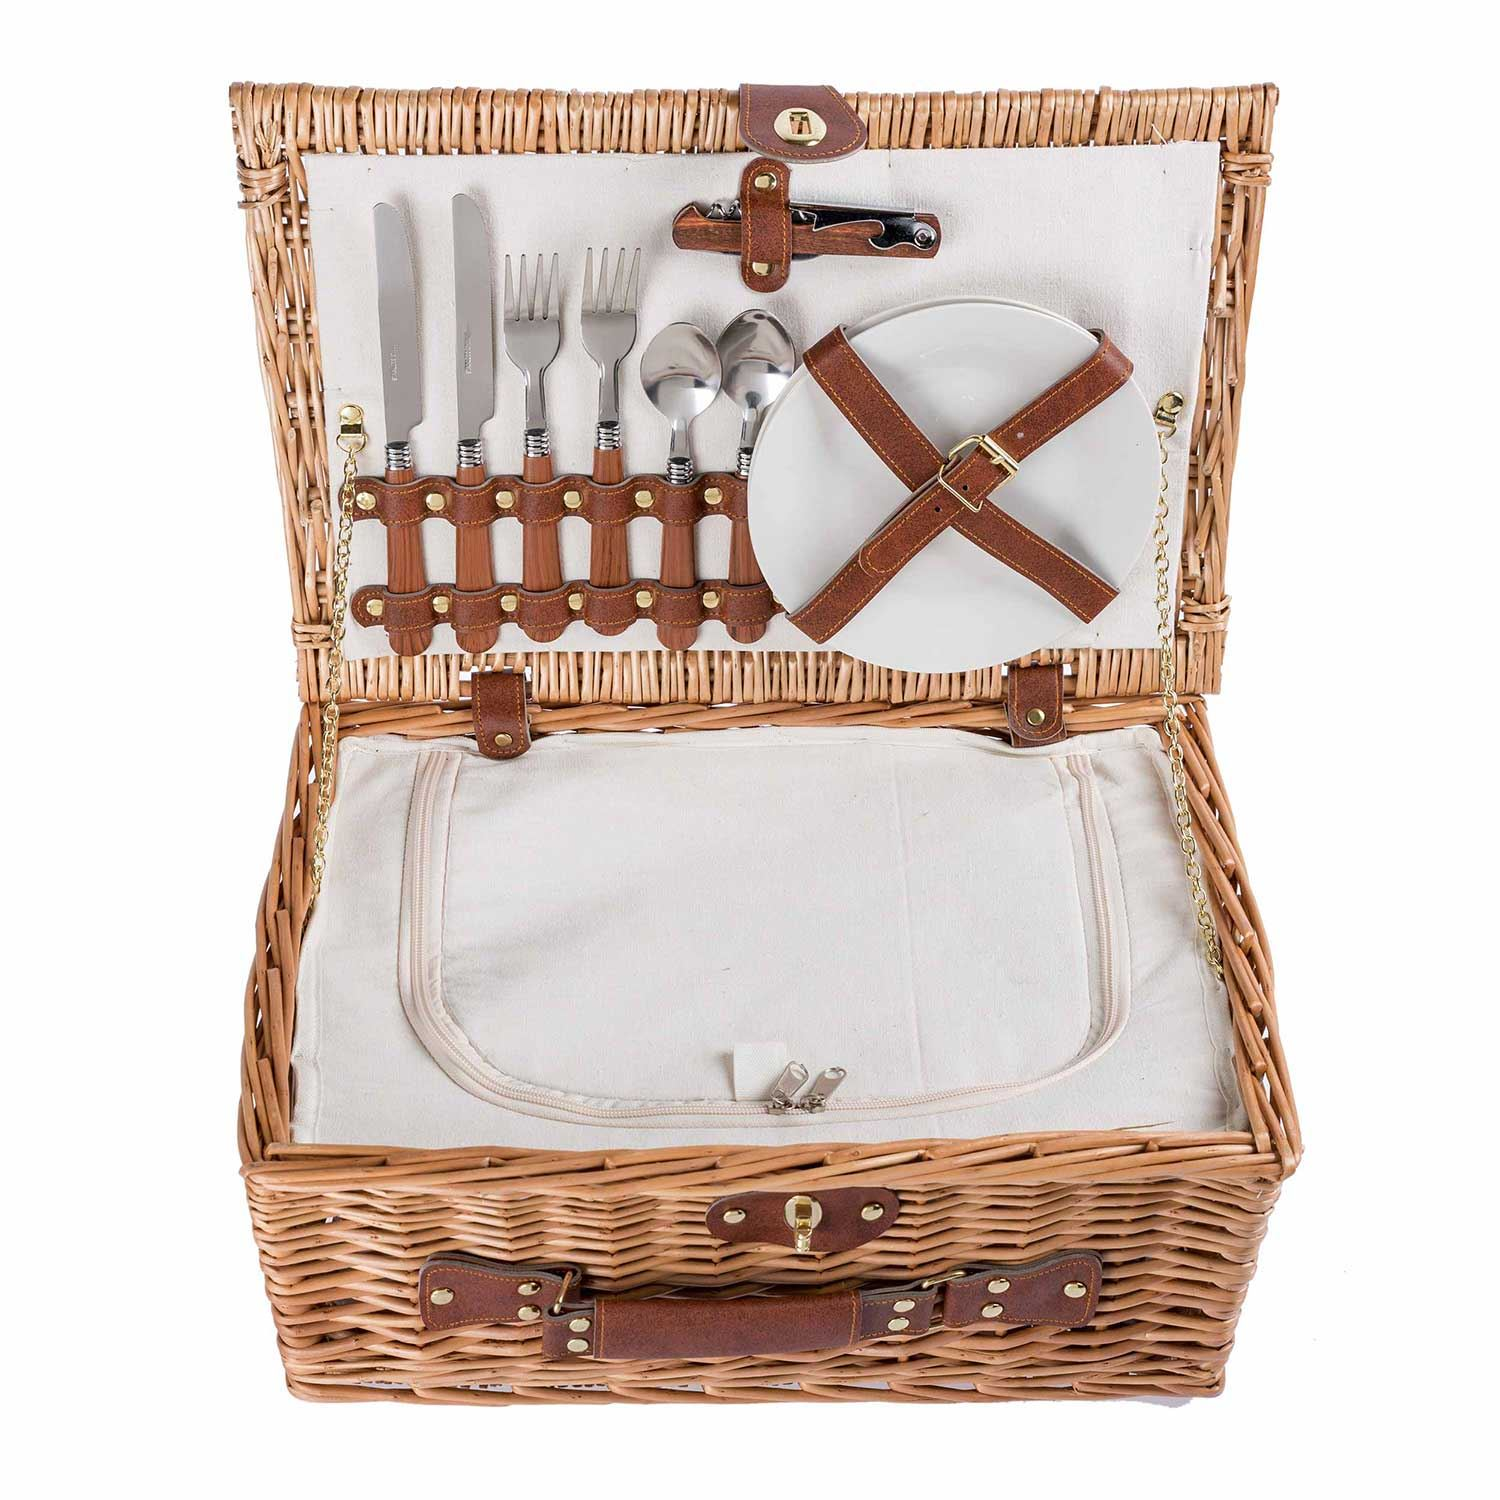 Laundry Wicker Basket Cotton Lining With Lid Home Bathroom ...